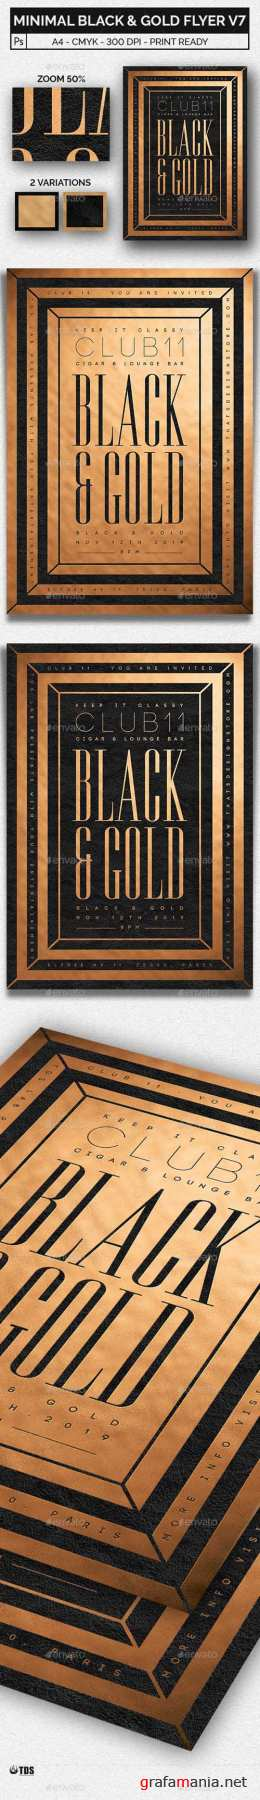 Minimal Black and Gold Flyer Template V7 20498374